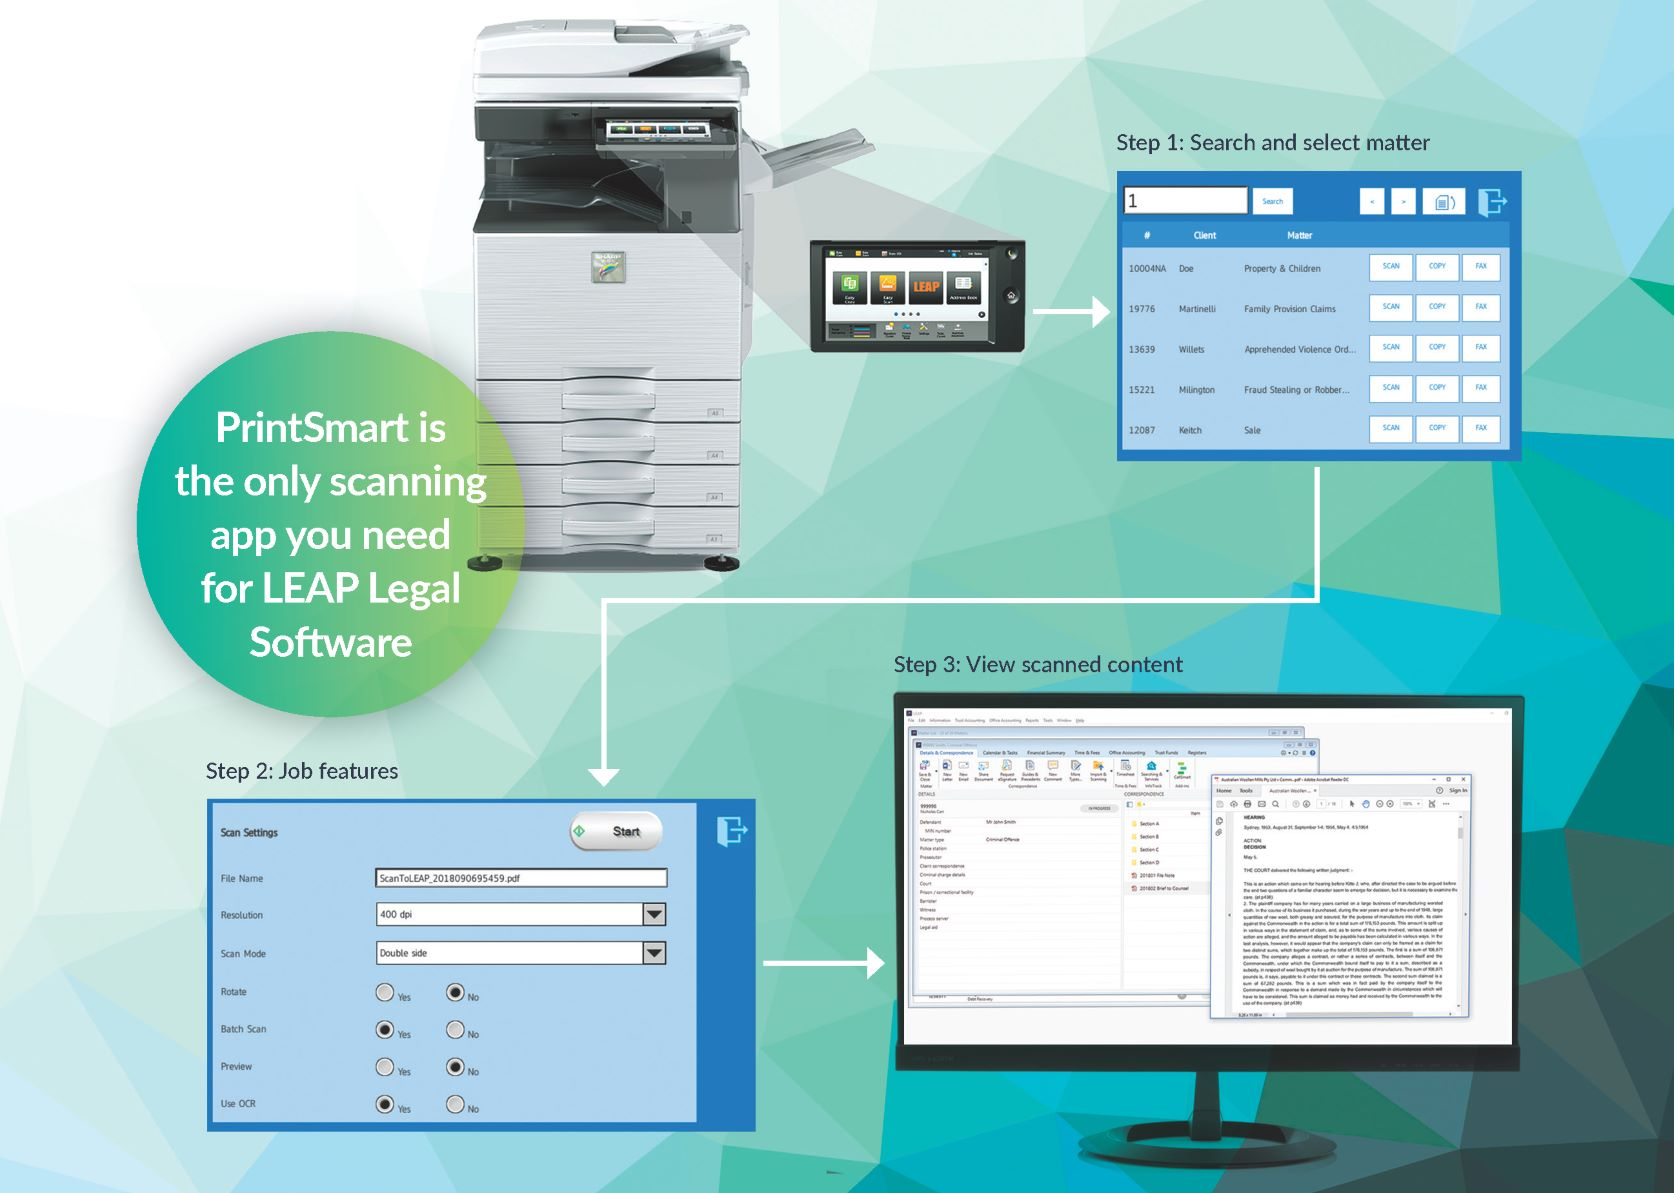 PrintSmart for LEAP